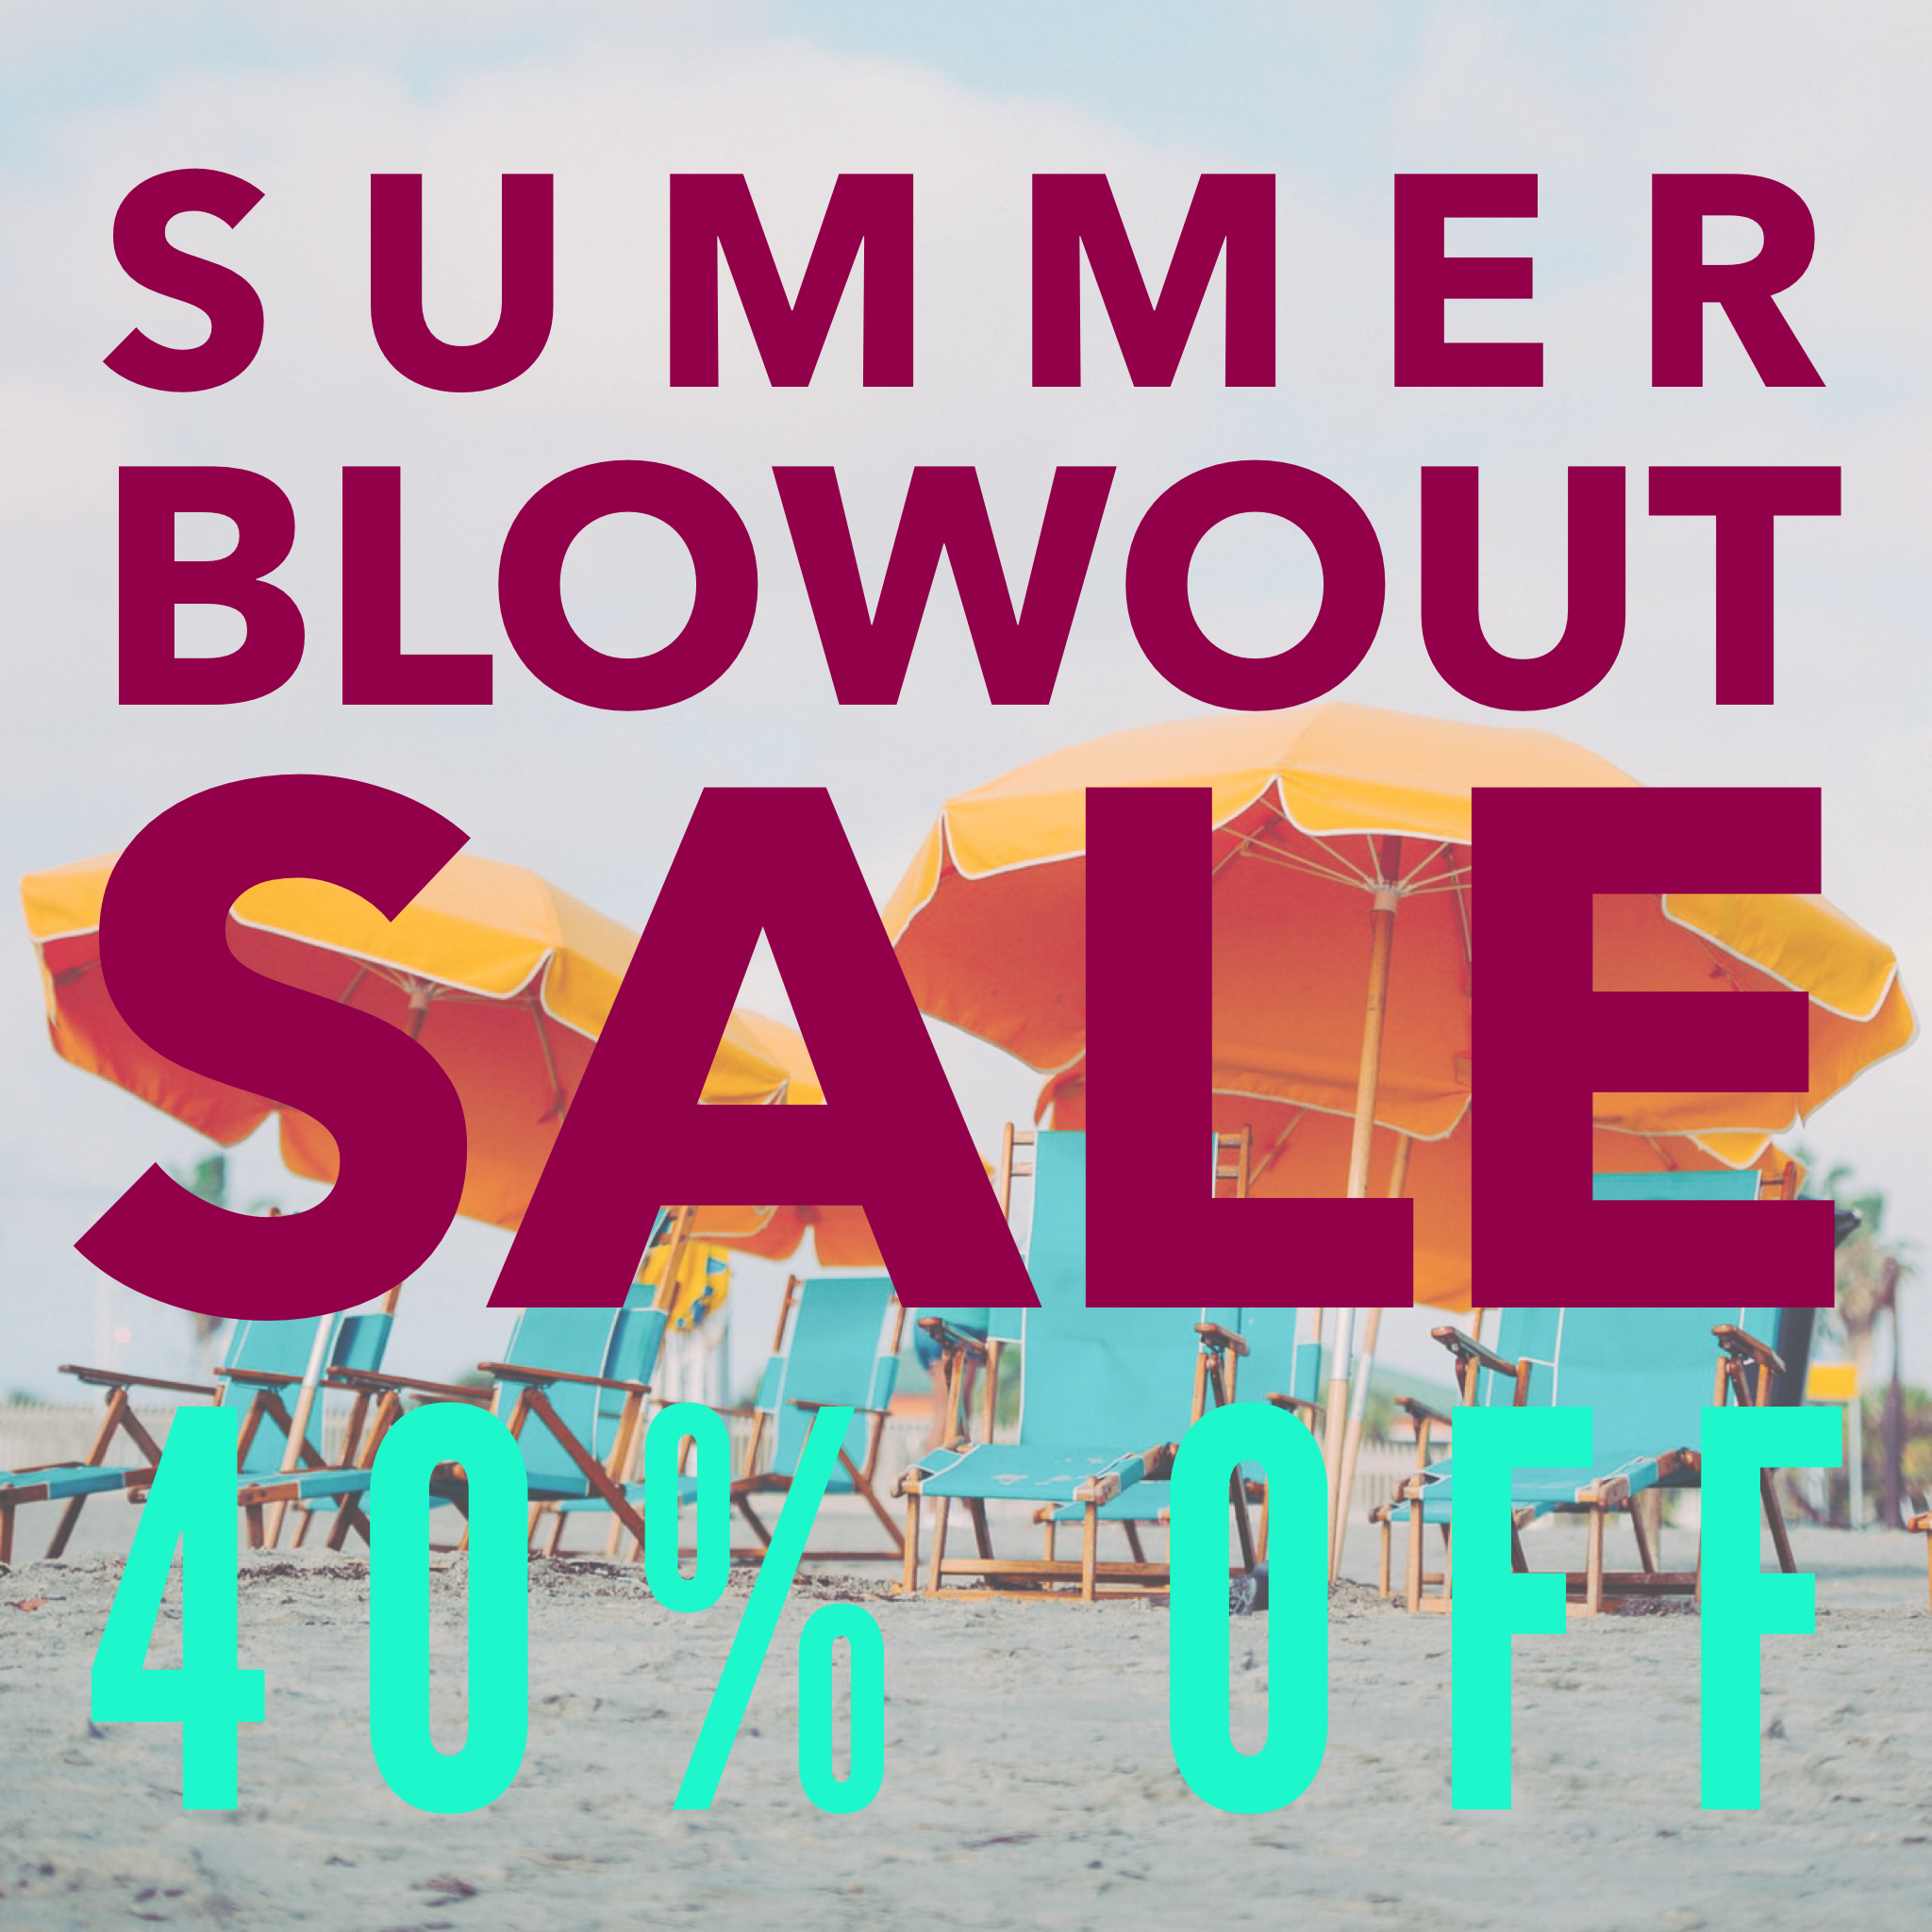 ‪Take an additional 40 OFF on our Summer Blowout Sale